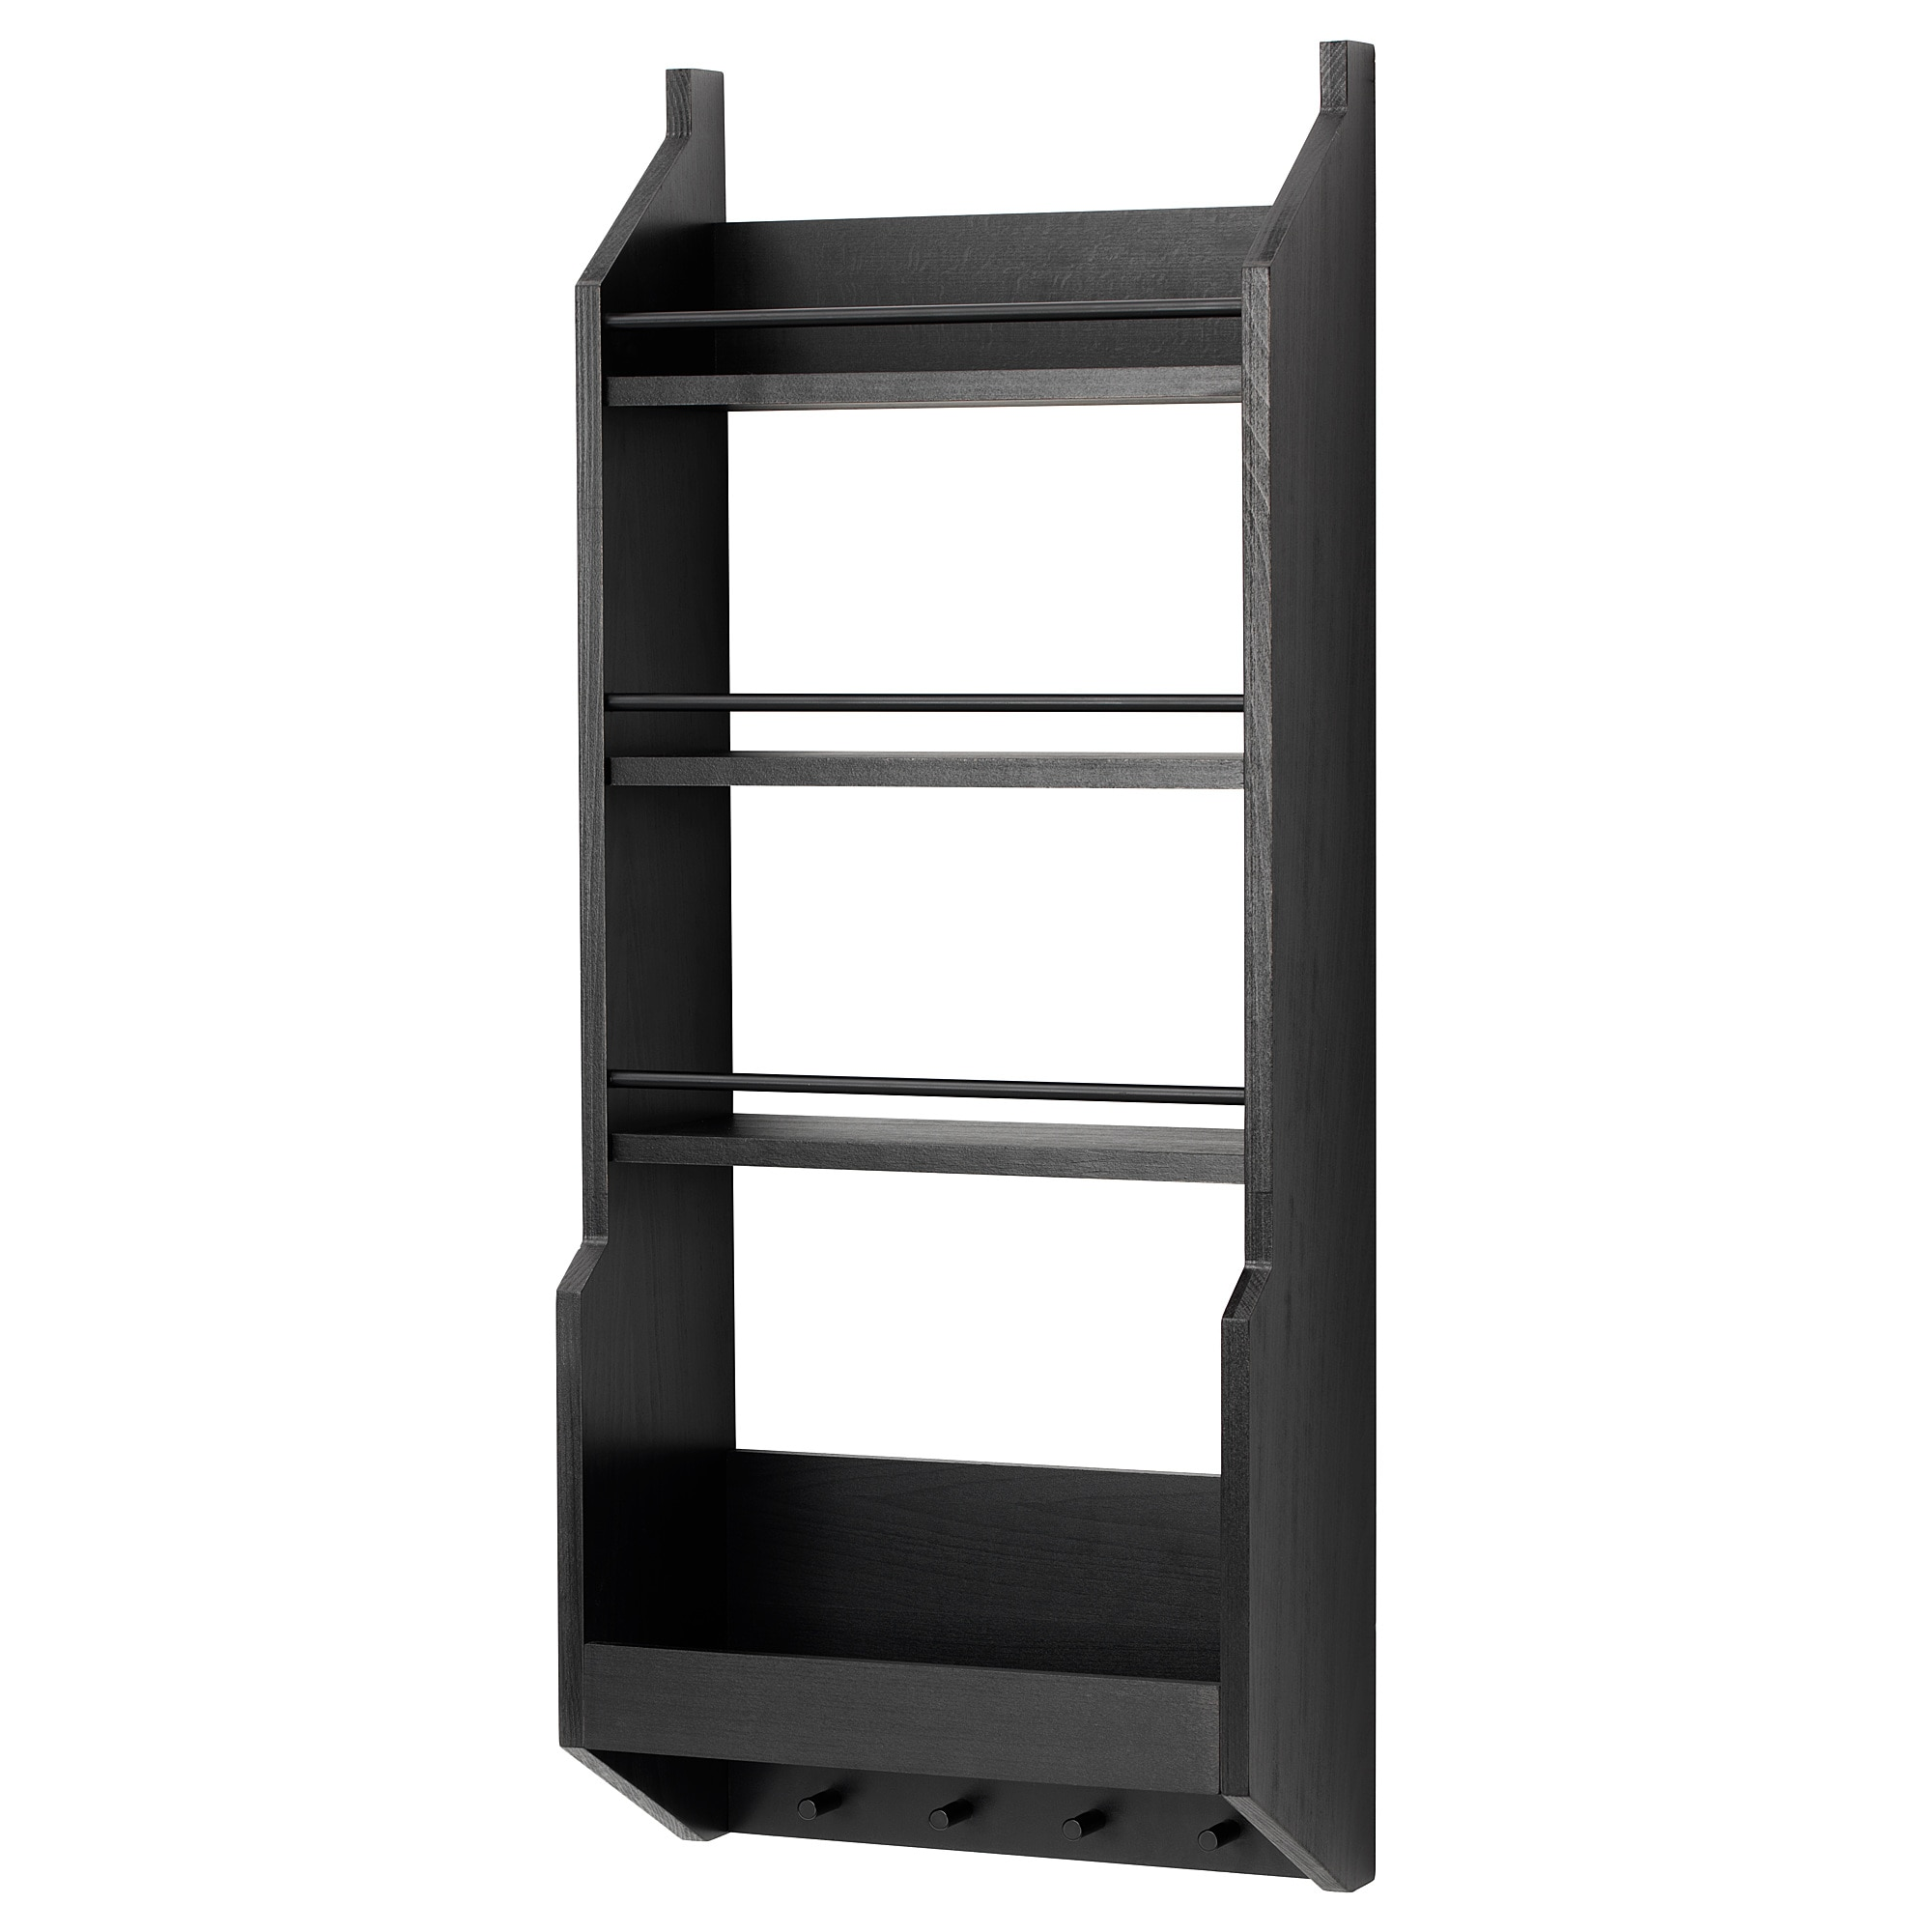 floating shelves wall shelf brackets ikea vadholma black vertical kitchen storage racks tvs stands for small computer desk cabinets glass inserts built shoe closet leaning corner